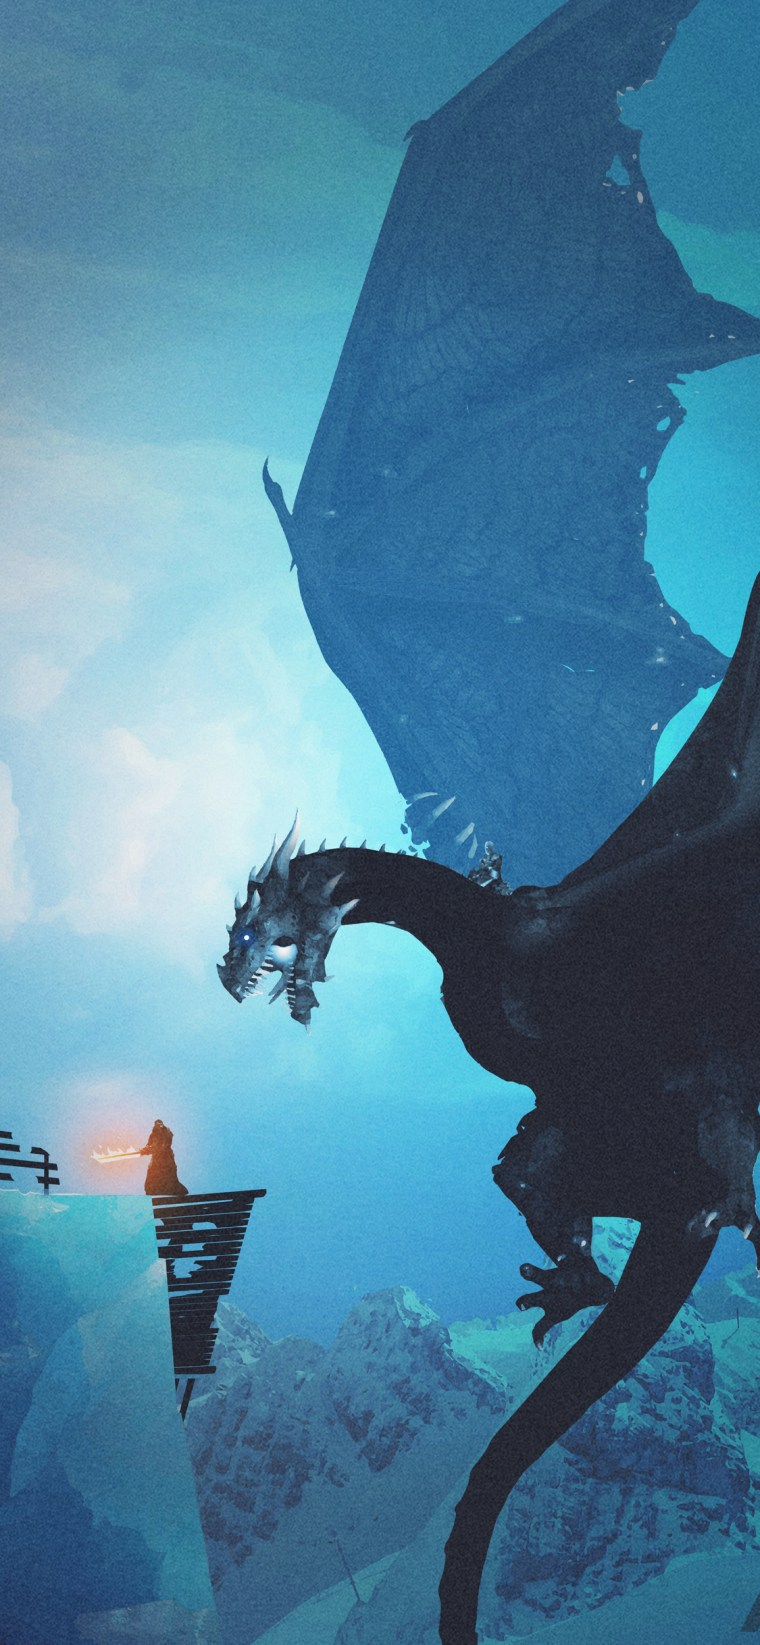 night-king-dragon-vs-lord-of-light iPhone game of thrones wallpaper